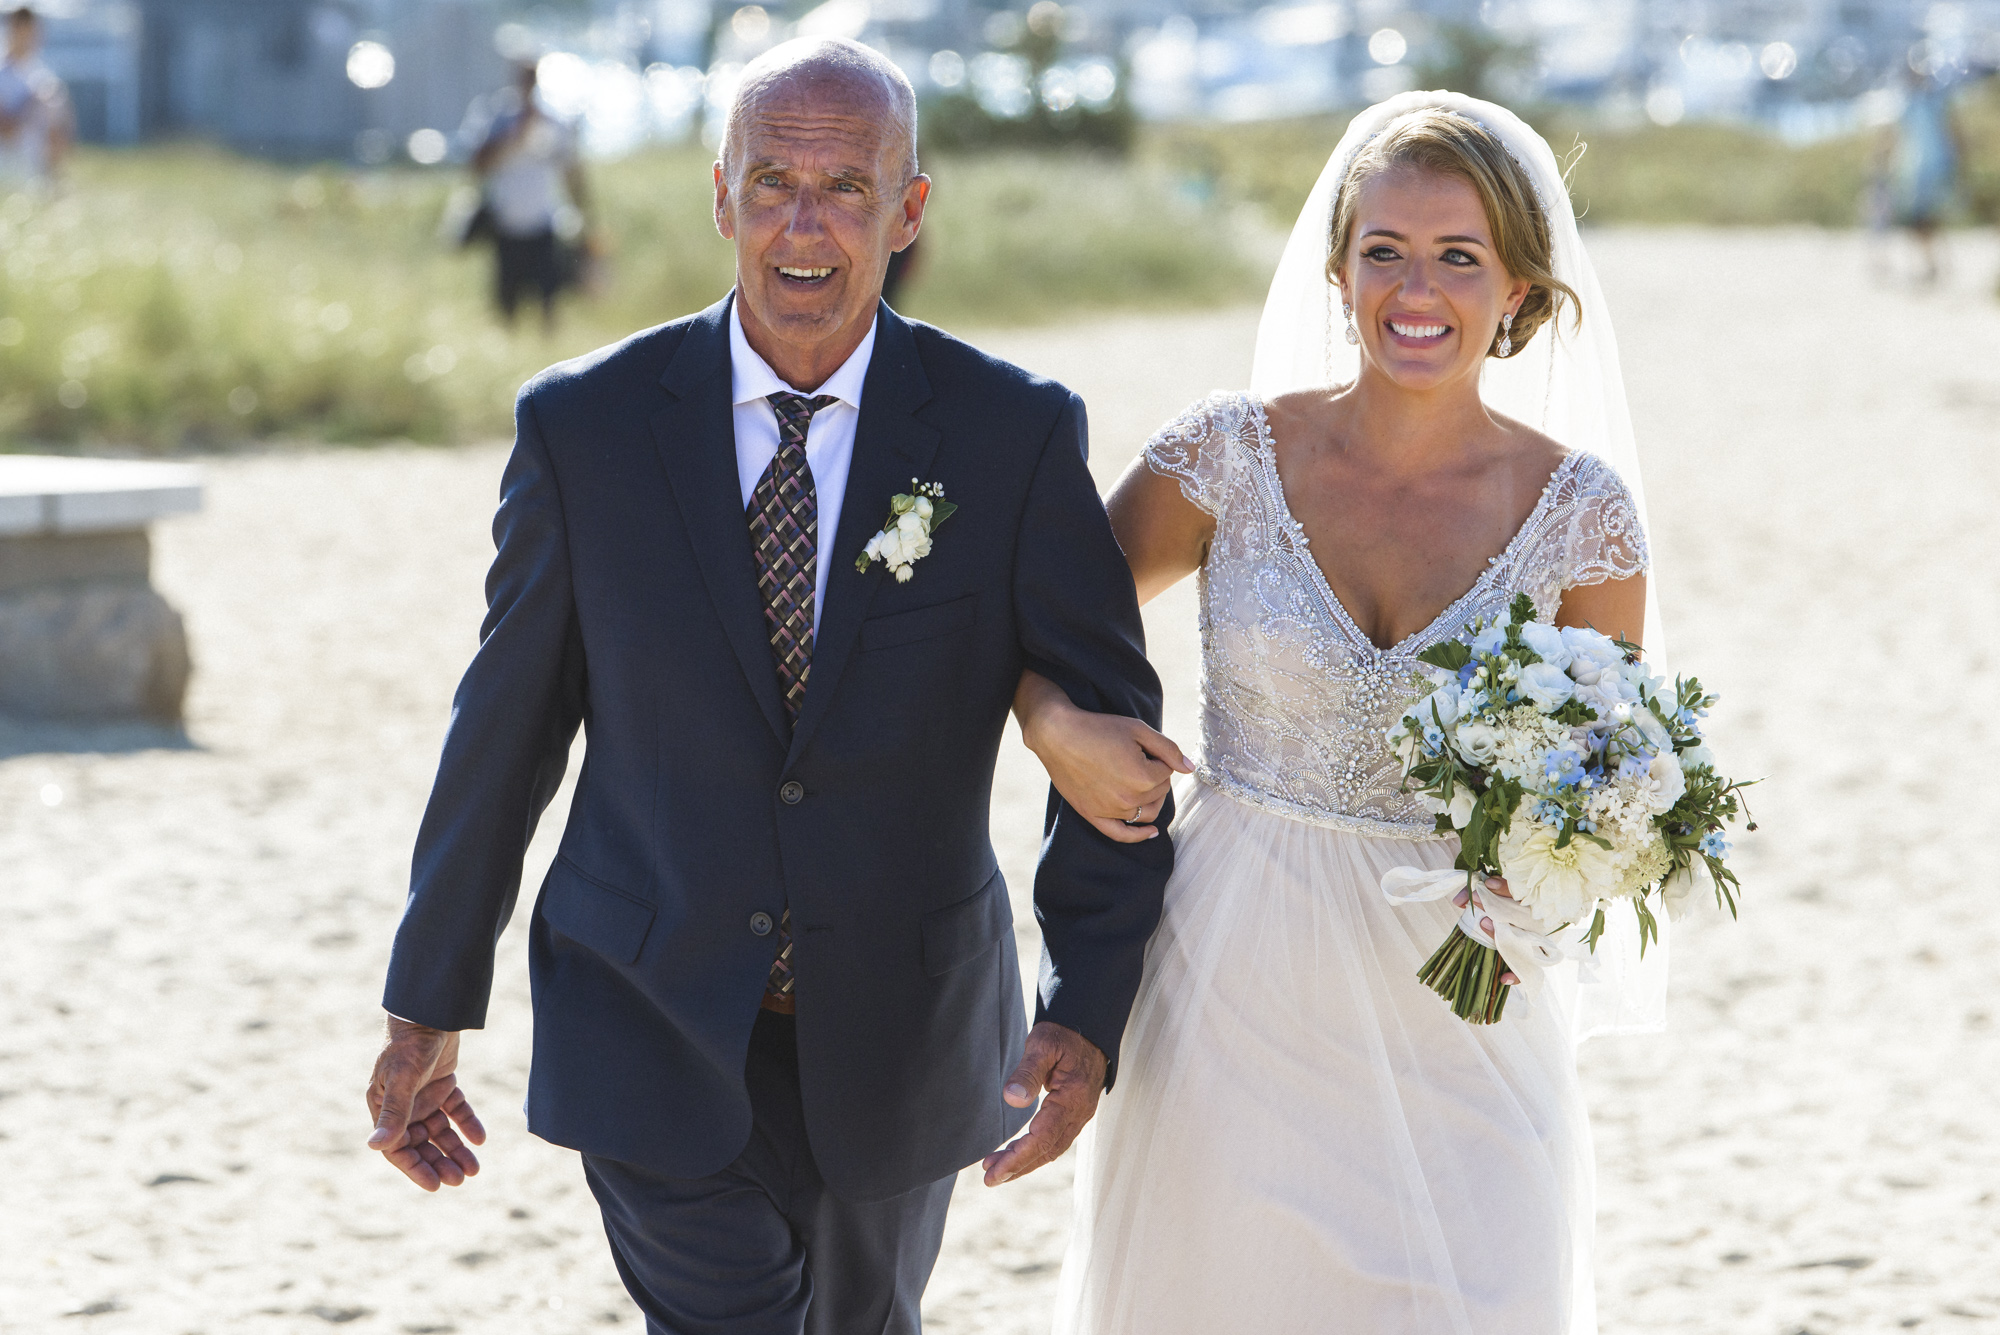 A father escorts his daughter to her wedding by the Edgartown Lighthouse on Martha's Vineyard photo by David Welch Photography